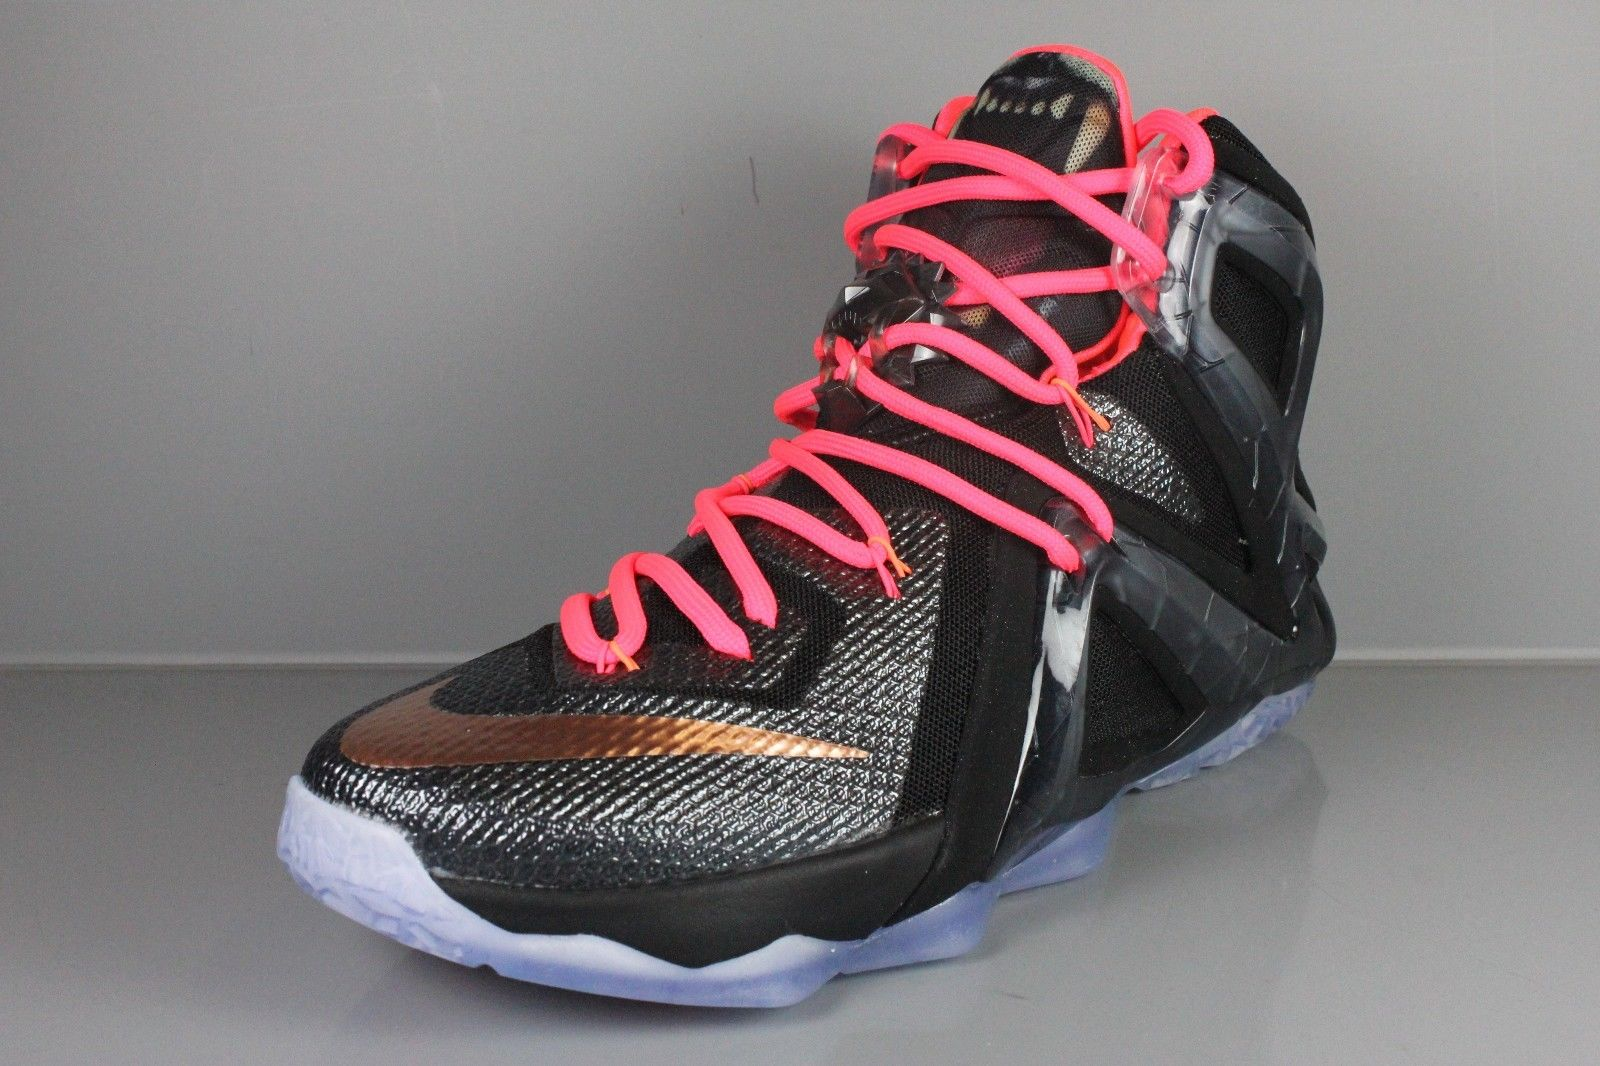 3509f3271a79 Will LeBron James Ever Wear This Nike LeBron 12 Elite